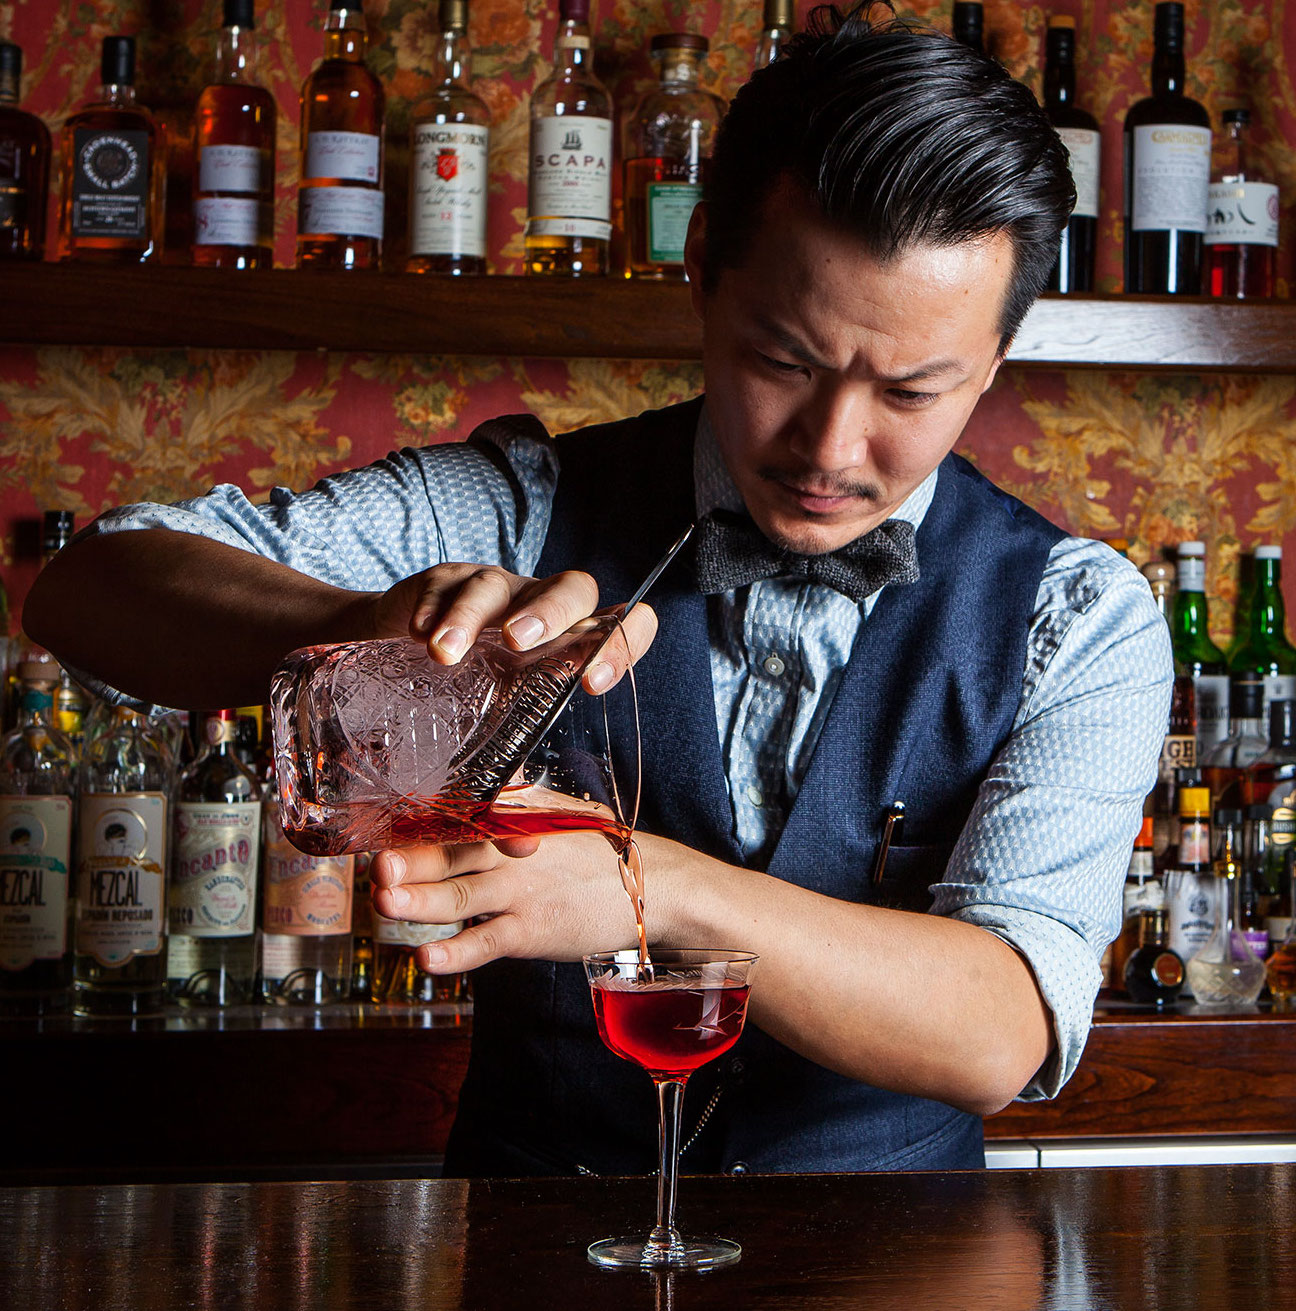 Article-Shingo-Gokan-Bartender-Angels-Share-NYC-Flair-Bartending.jpg